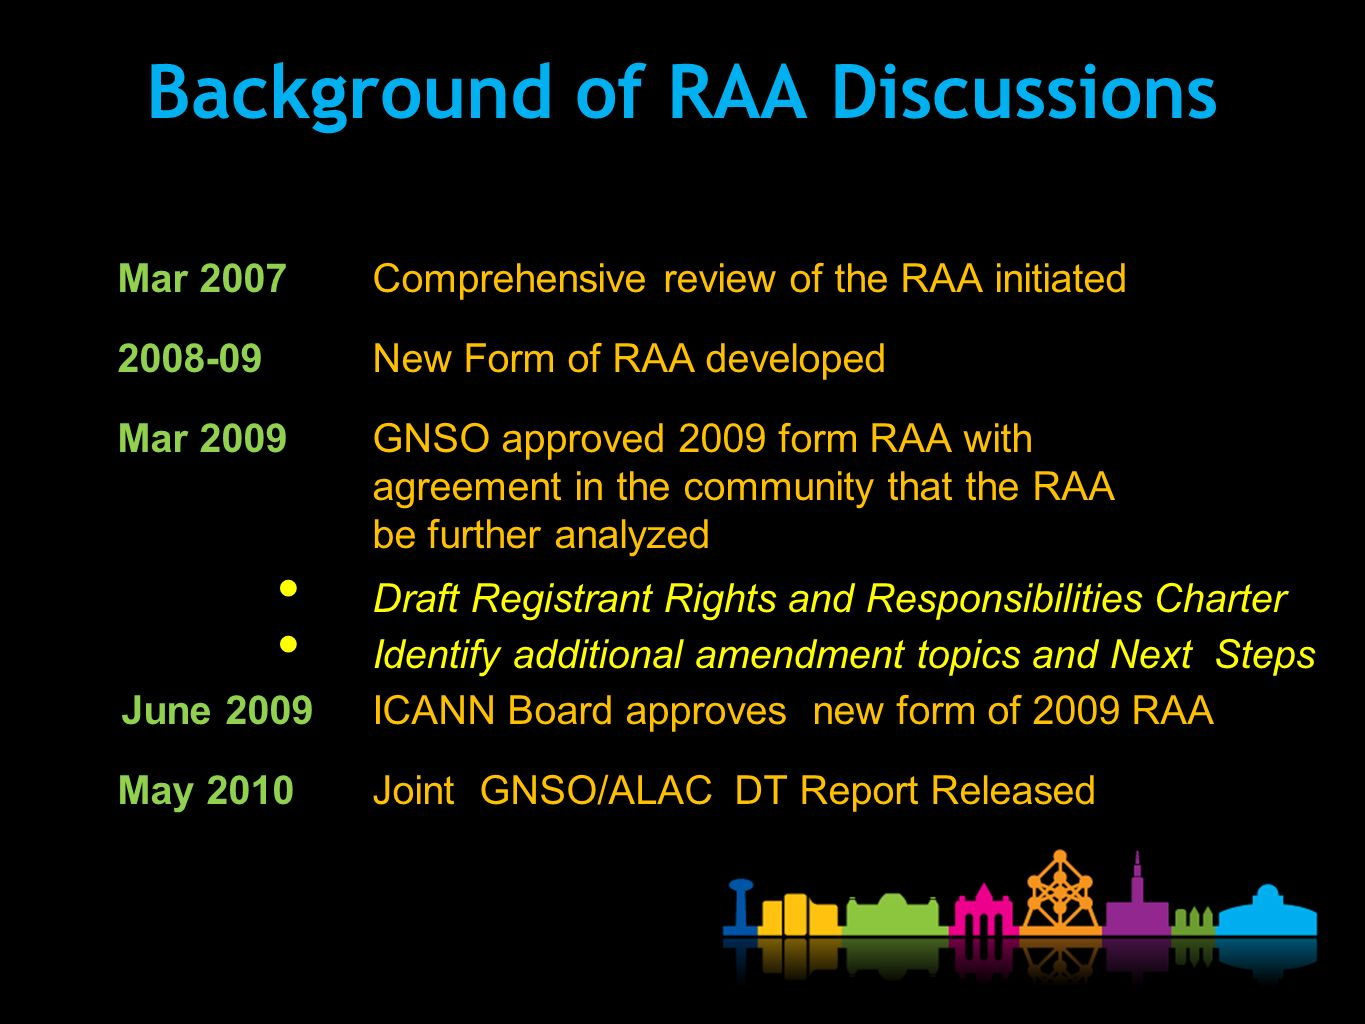 Background of RAA Discussions Mar 2007Comprehensive review of the RAA initiated 2008-09 New Form of RAA developed Mar 2009 GNSO approved 2009 form RAA with agreement in the community that the RAA be further analyzed Draft Registrant Rights and Responsibilities Charter Identify additional amendment topics and Next Steps June 2009ICANN Board approves new form of 2009 RAA May 2010Joint GNSO/ALAC DT Report Released